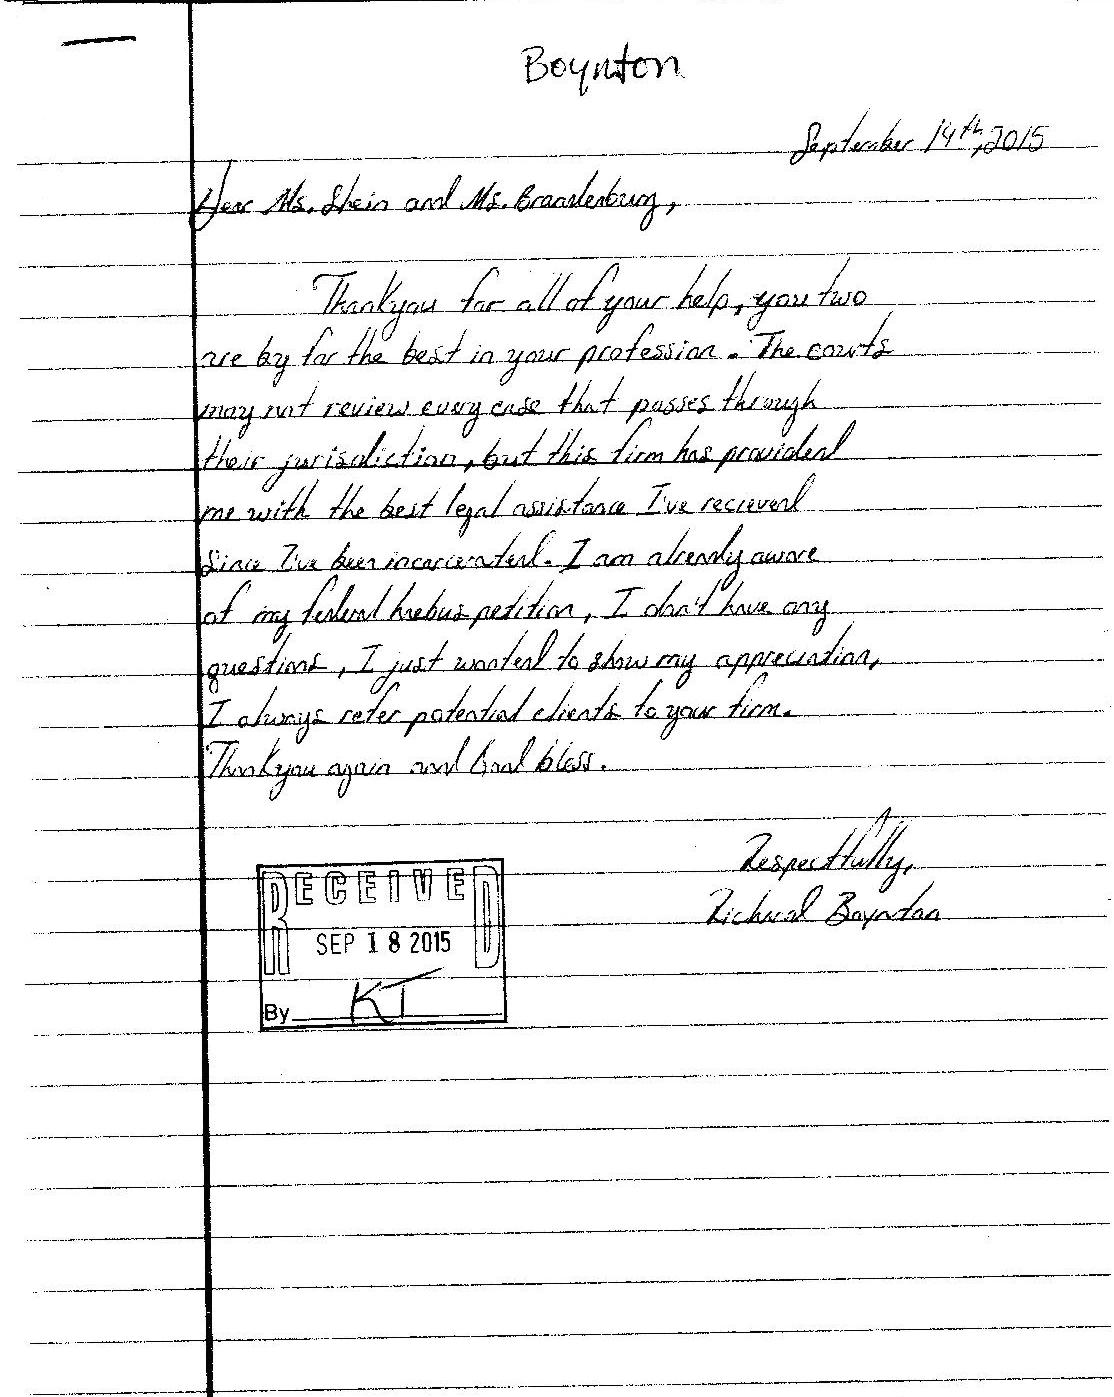 Appreciation letter from client page 001 federal criminal law center appreciation letter from client thecheapjerseys Gallery